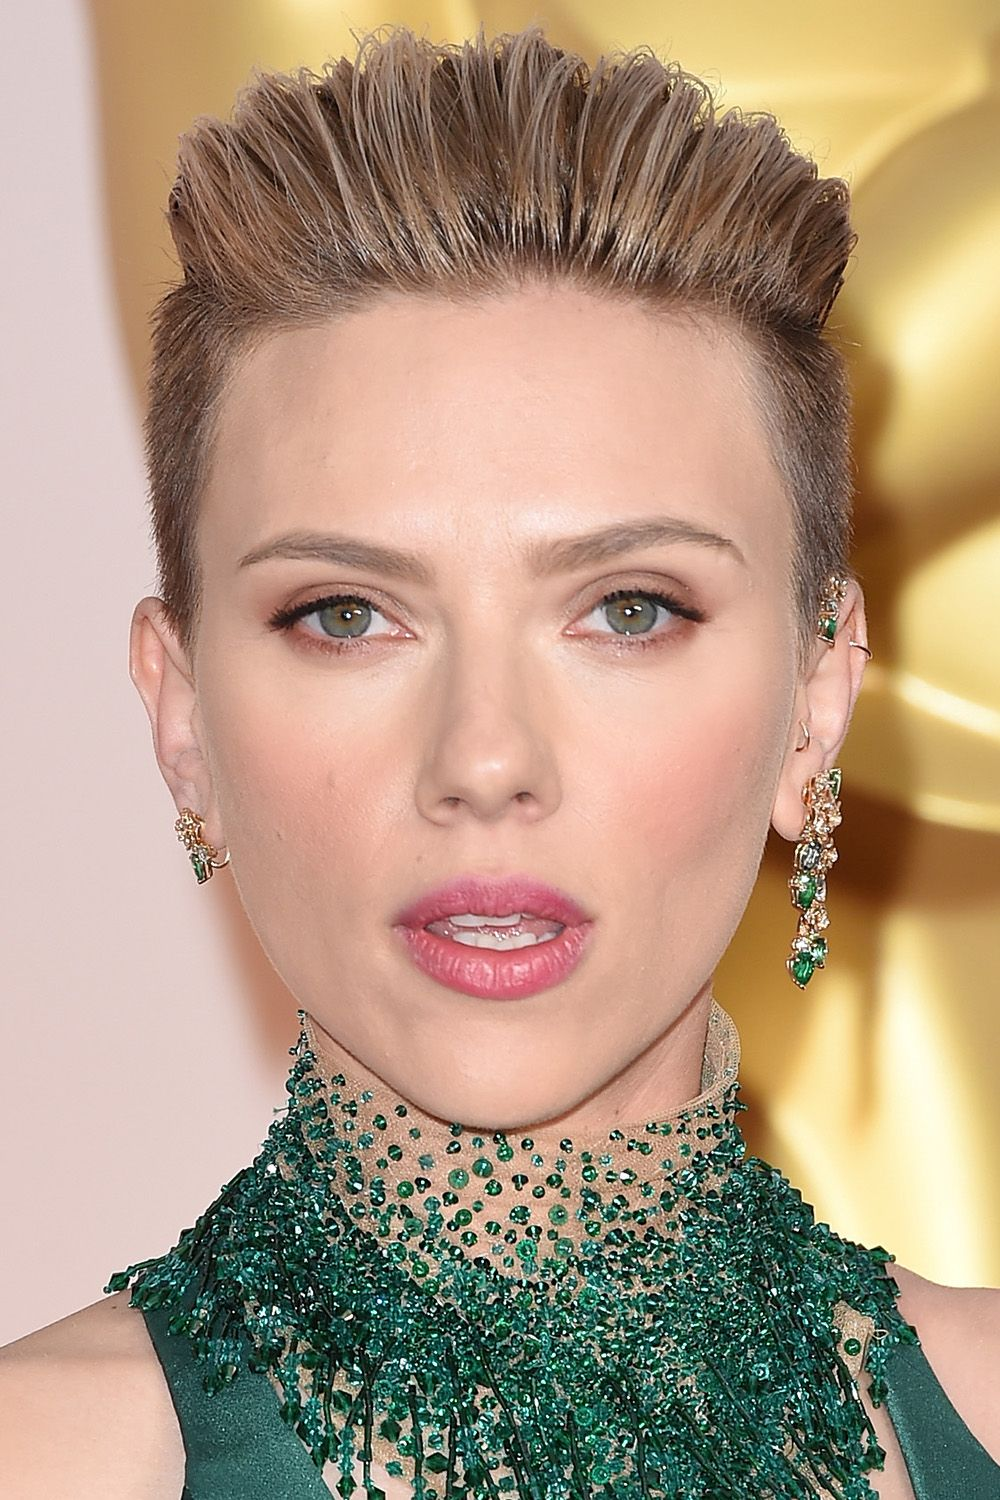 "<p>An edgy undercut still looks feminine when the color is soft. Plus, caramel tones make Scarlett Johansson's green eyes pop. <span class=""redactor-invisible-space"" data-verified=""redactor"" data-redactor-tag=""span"" data-redactor-class=""redactor-invisible-space""></span></p>"